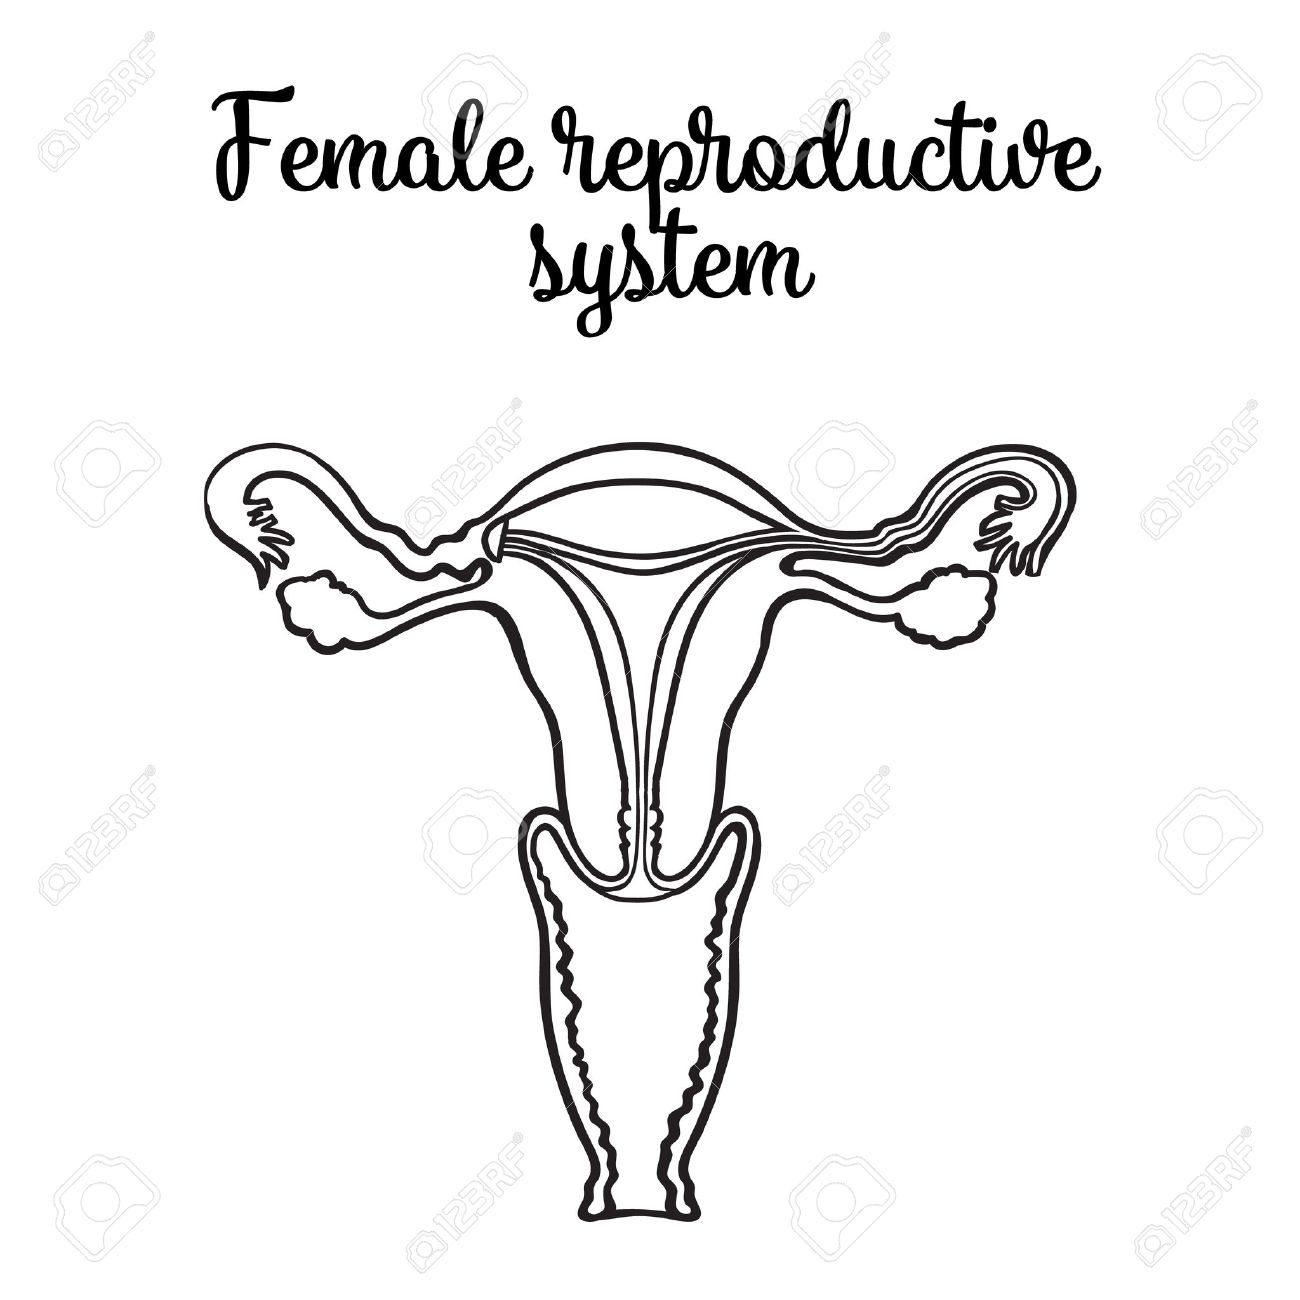 1300x1300 Female Reproductive System, Vector Circuit Sketch Hand Drawn